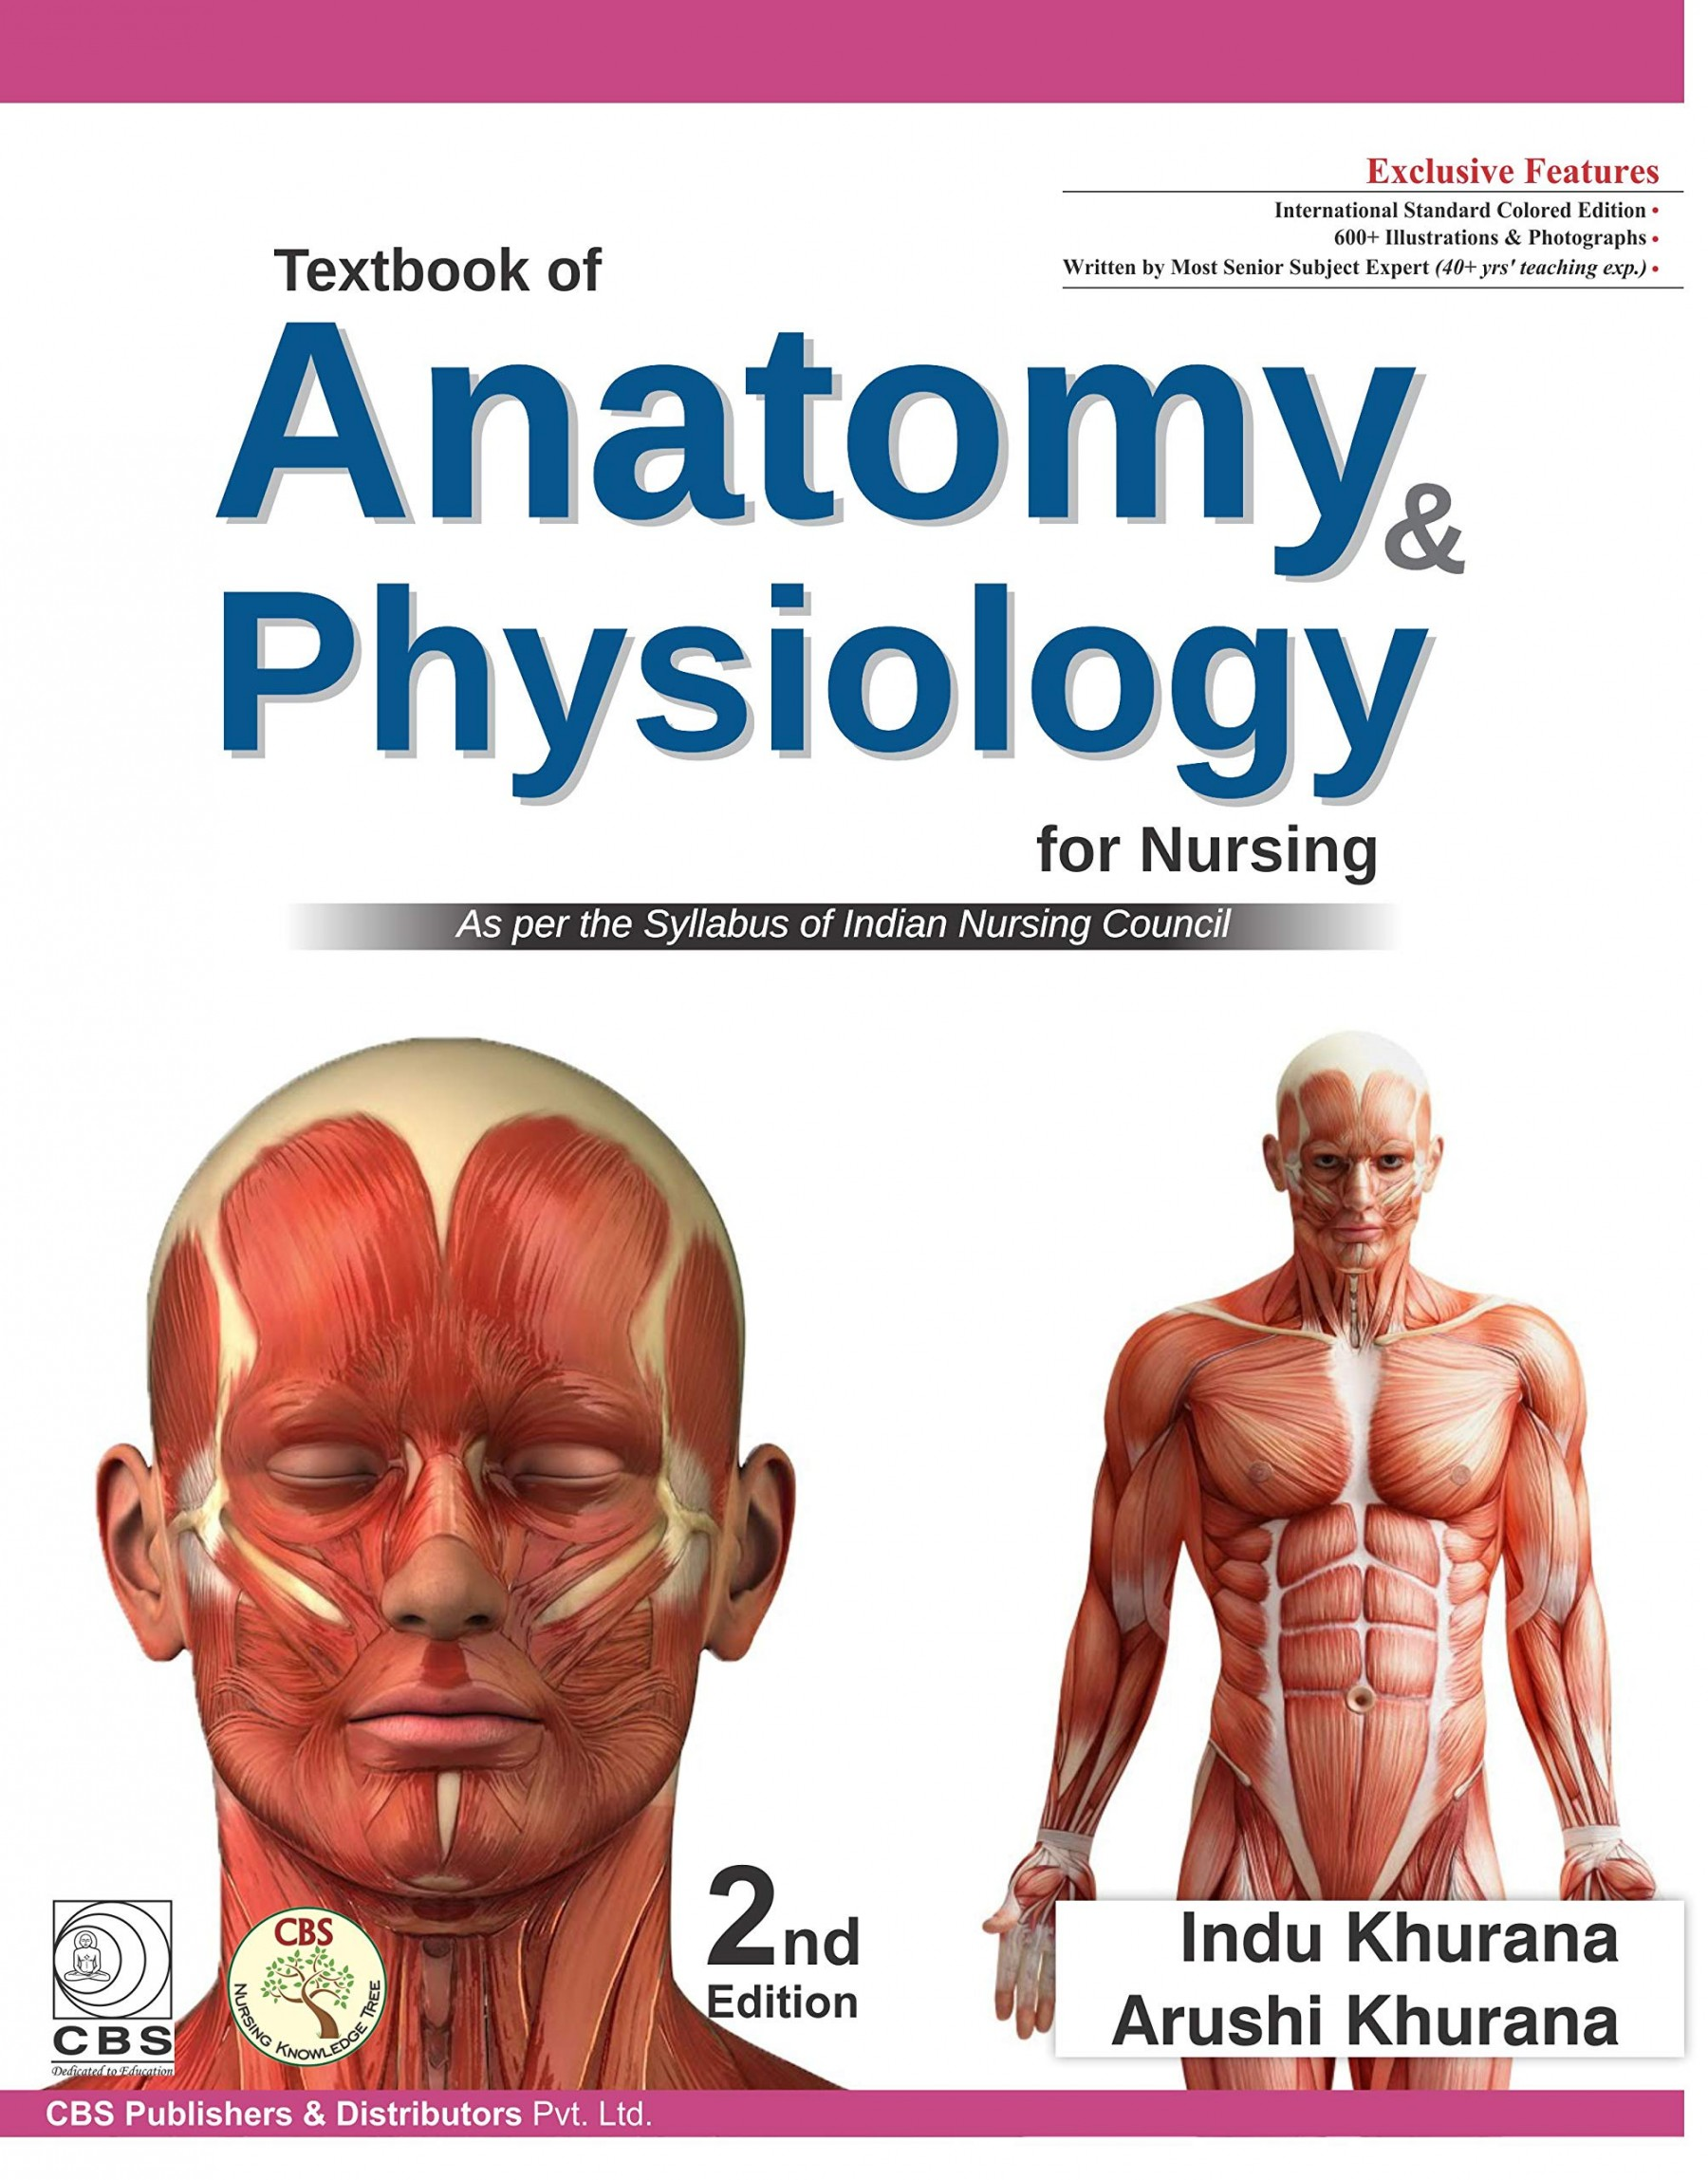 Textbook of Anatomy & Physiology for BSc Nurses